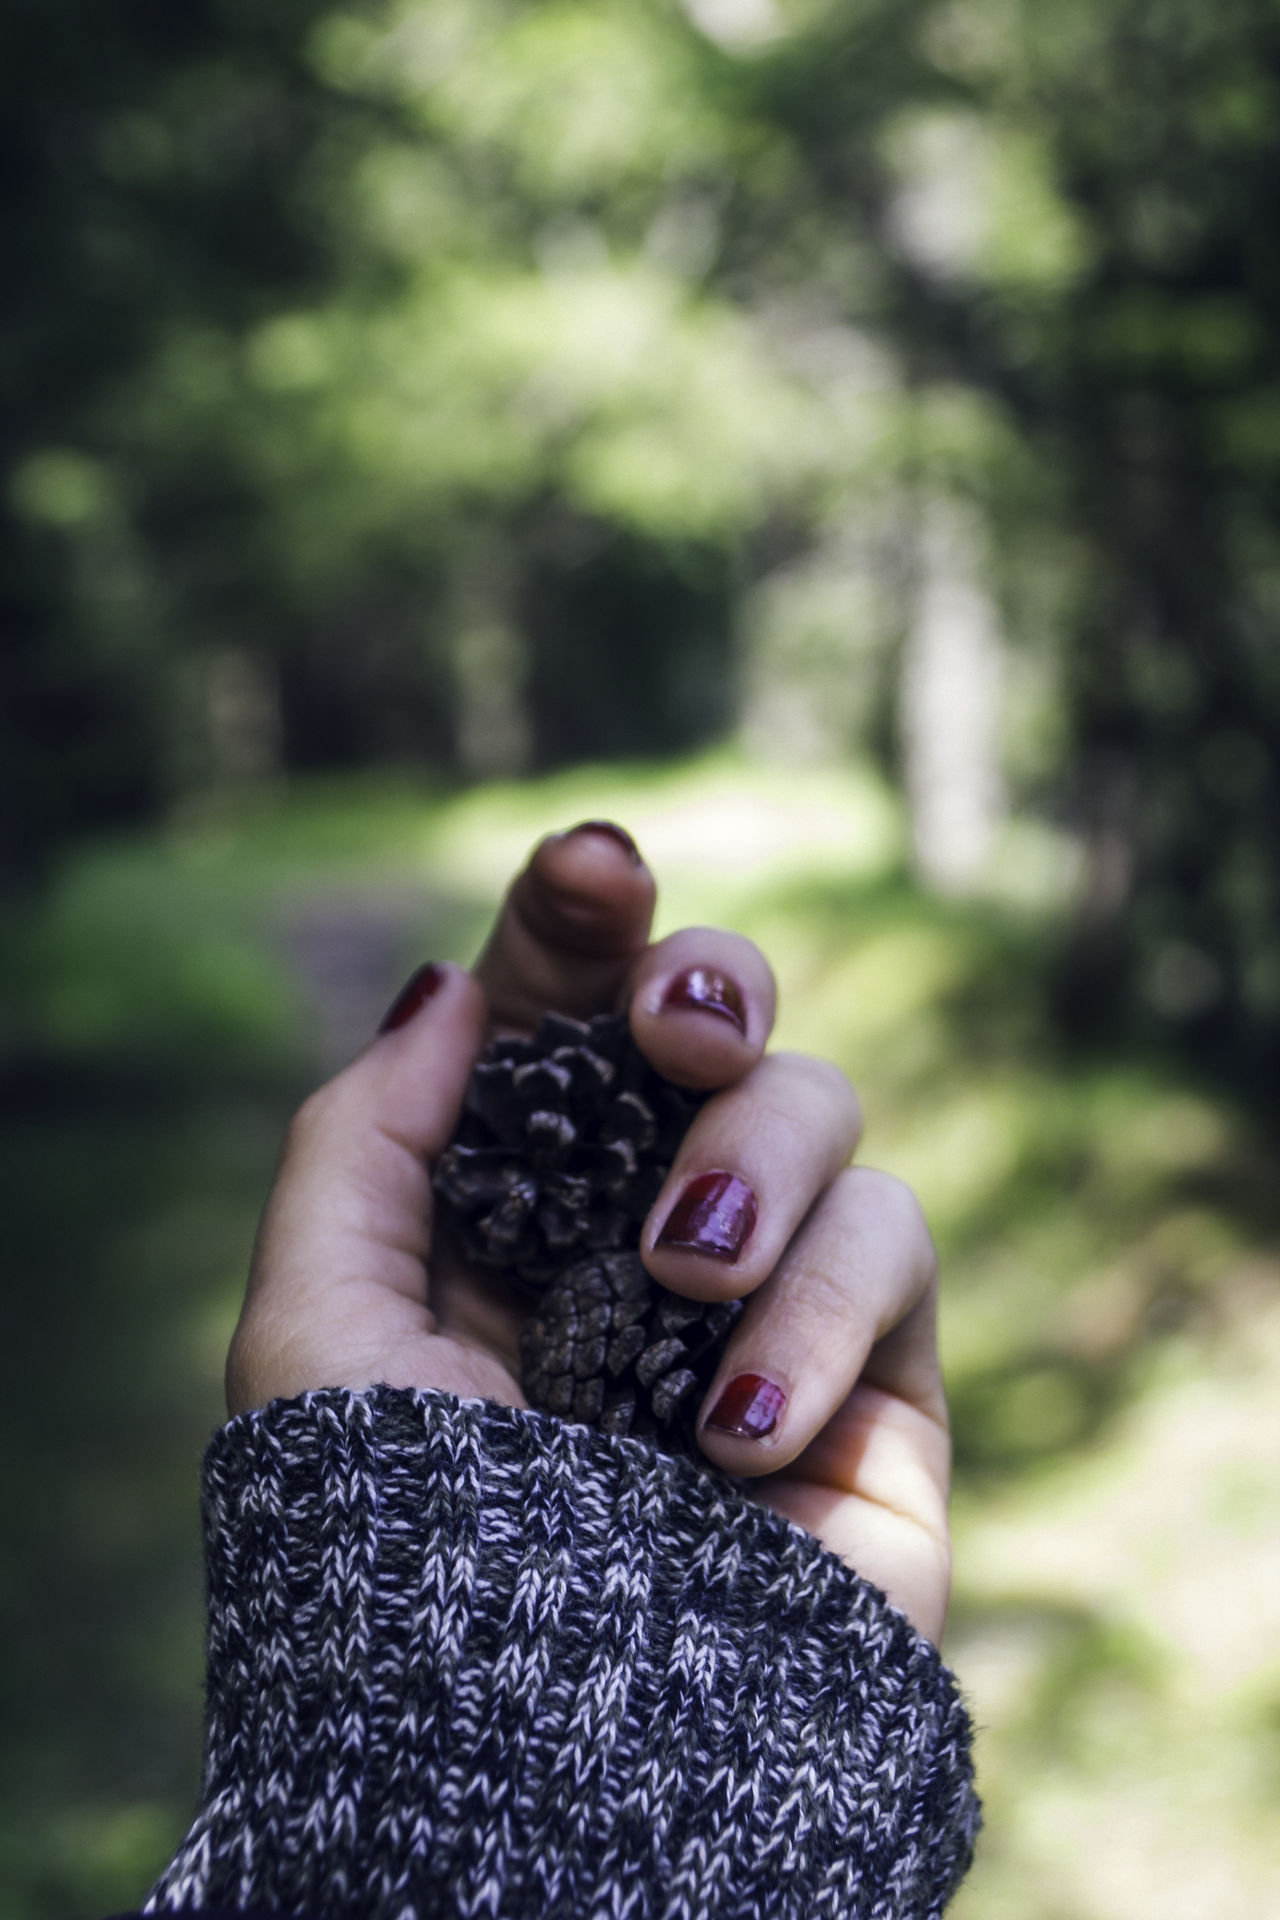 Hiking in Switzerland Autumn Bokeh Close-up Cozy Creativity Cute Day Detail Focus On Foreground Forest Green Grey Hand Hiking Holding Leisure Activity Nails Person Personal Perspective Pine Spring Sweater Sweet Vertical Woods